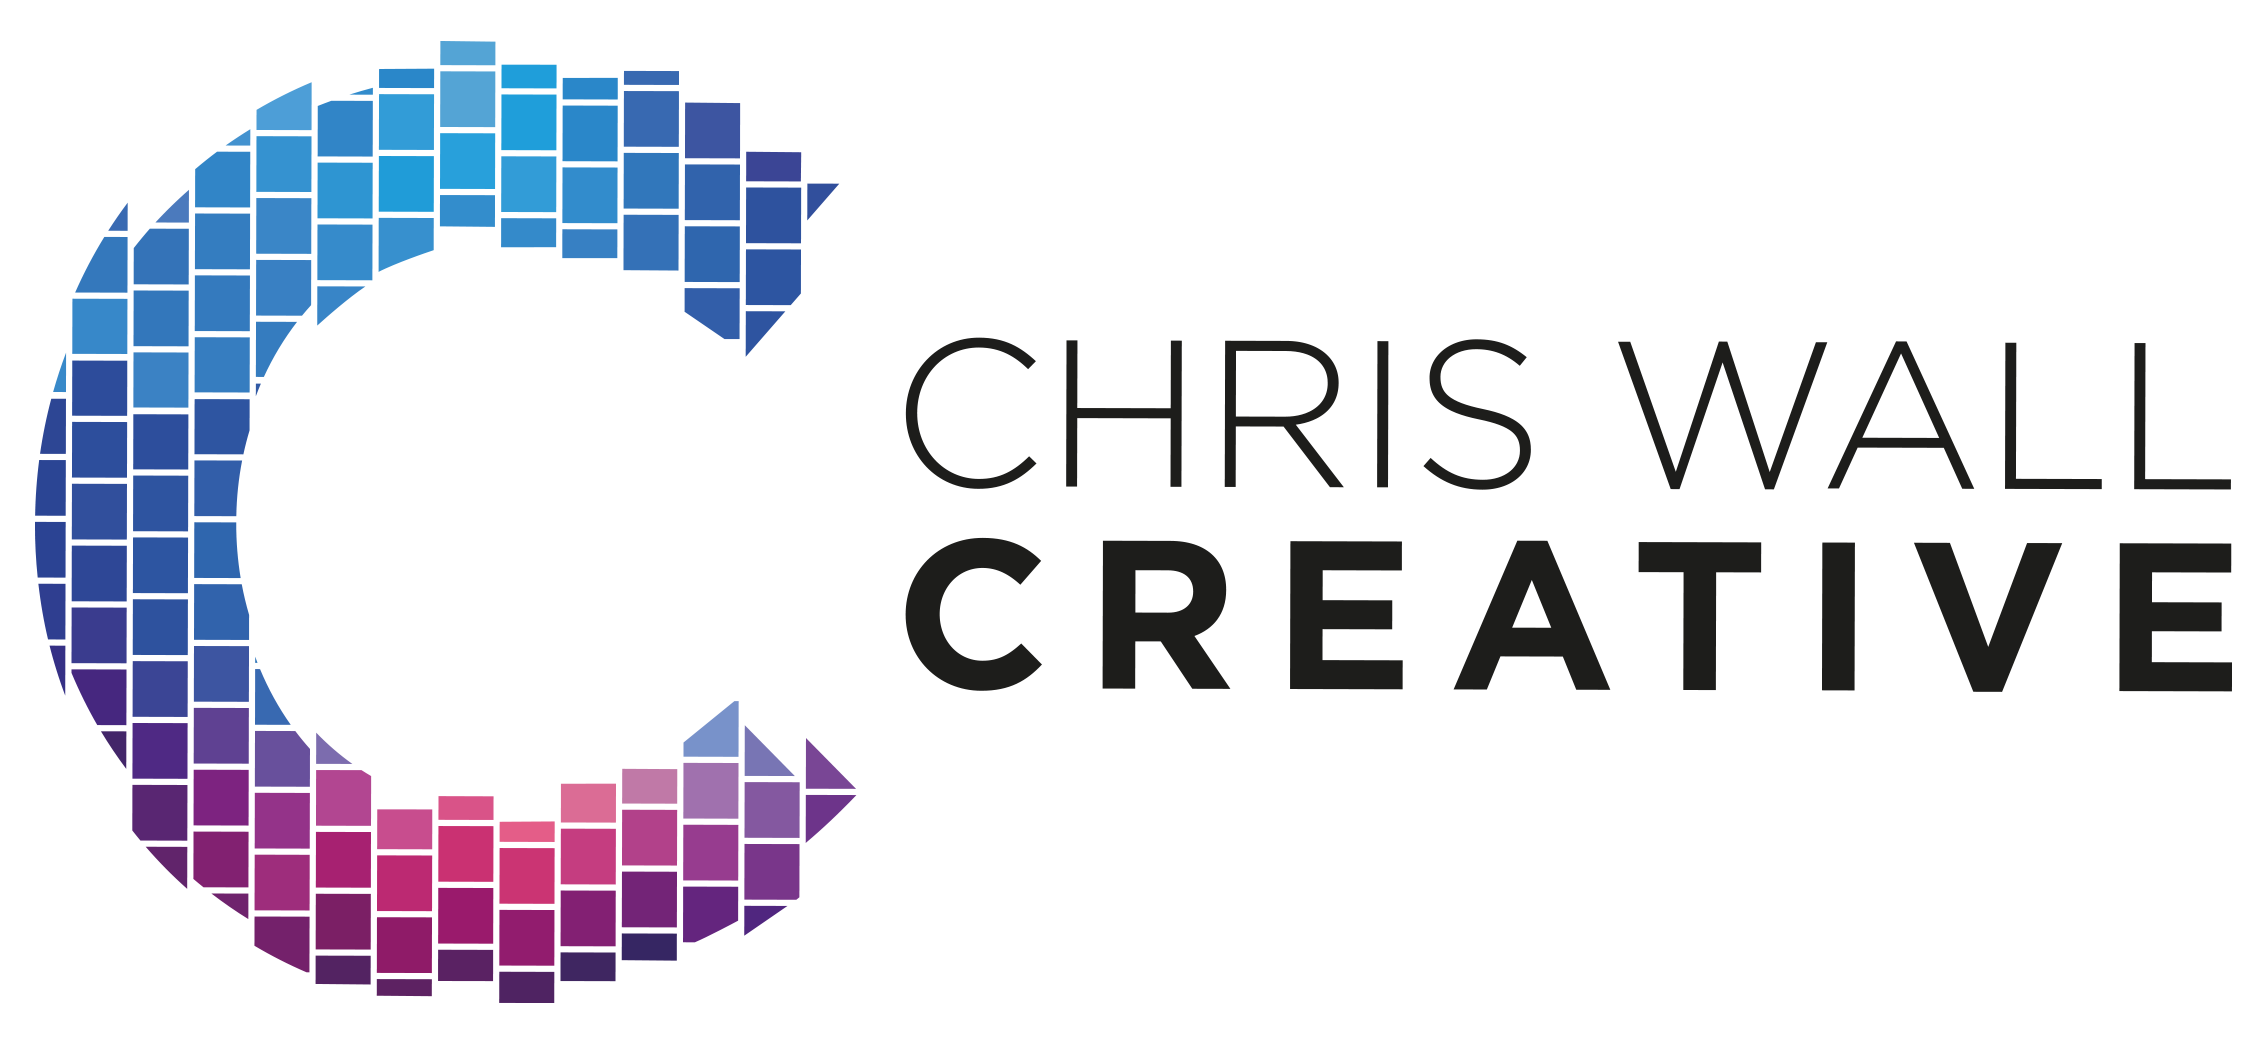 Chris Wall Creative